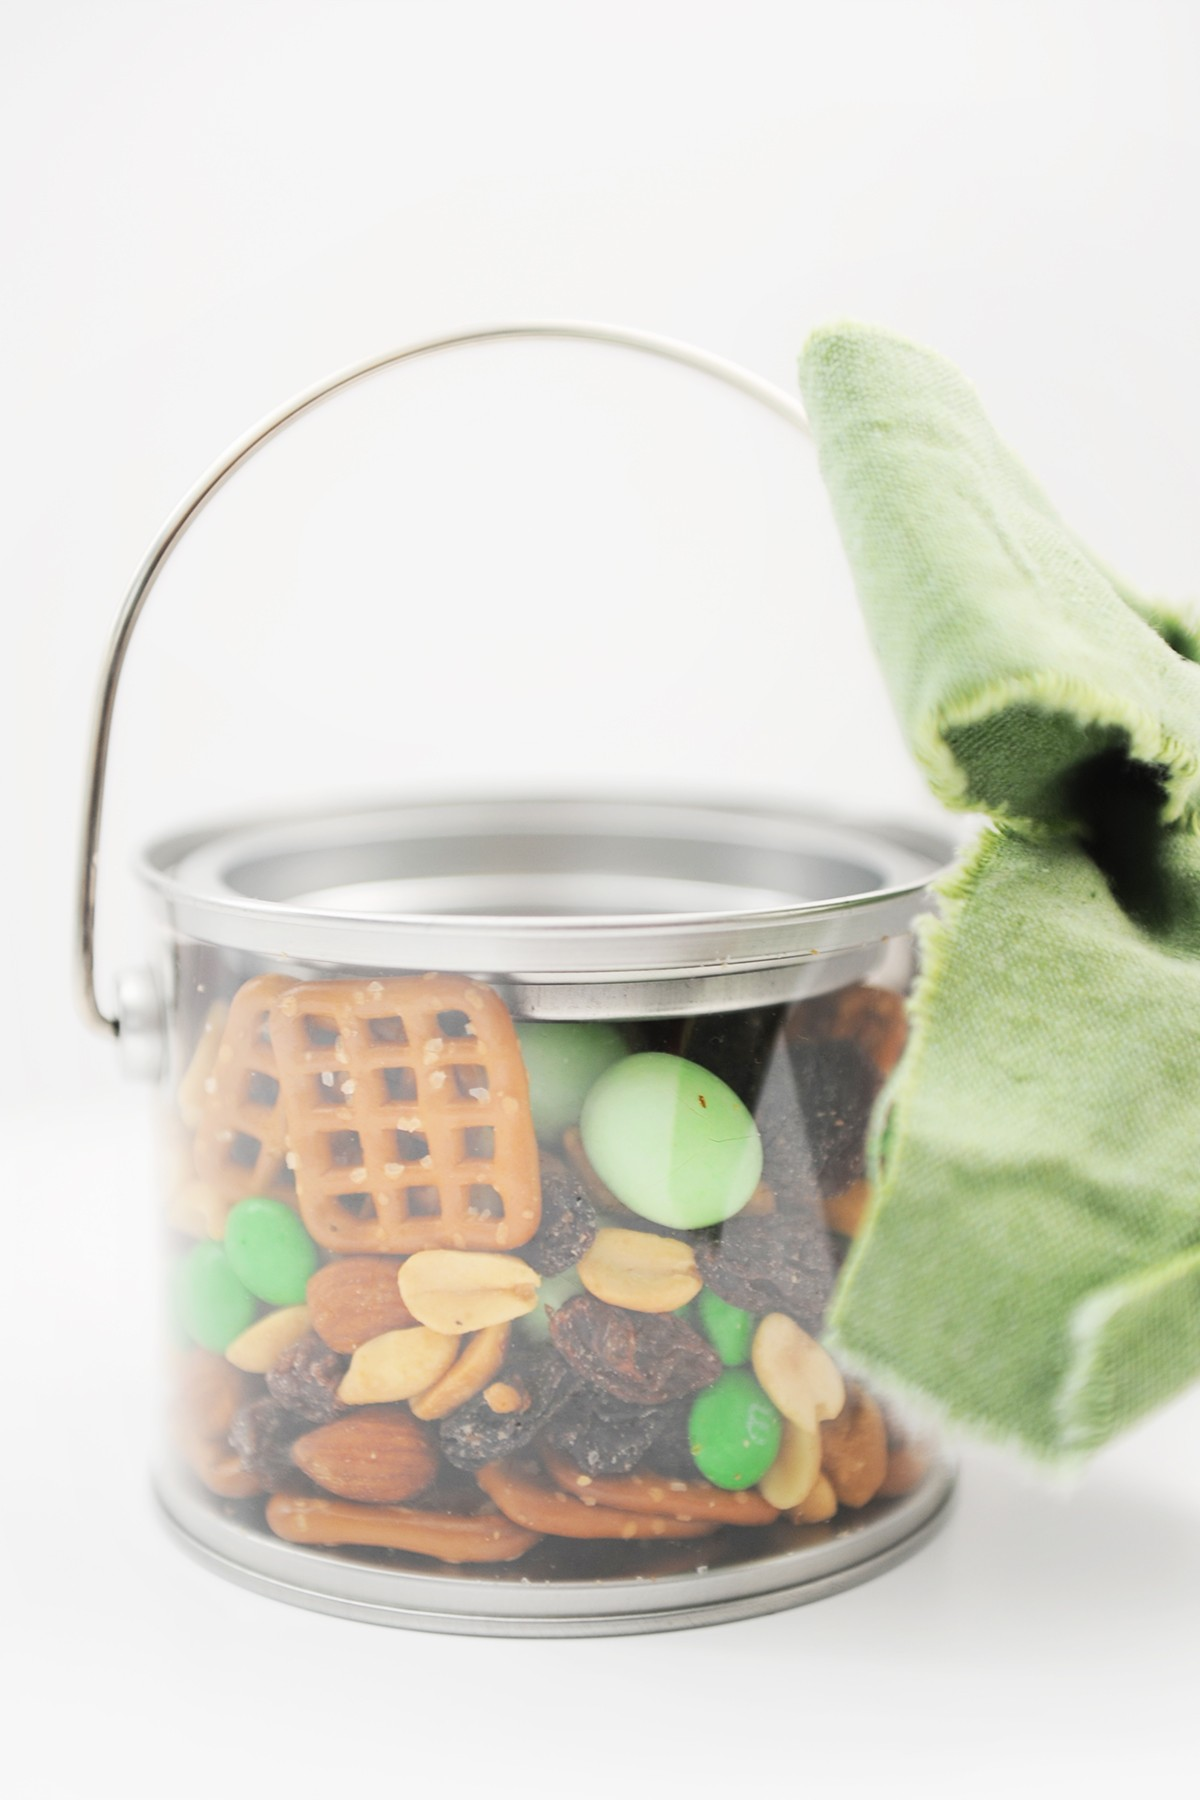 Catch a Leprechaun with this Yummy Leprechaun Bait and Cute Free Printable